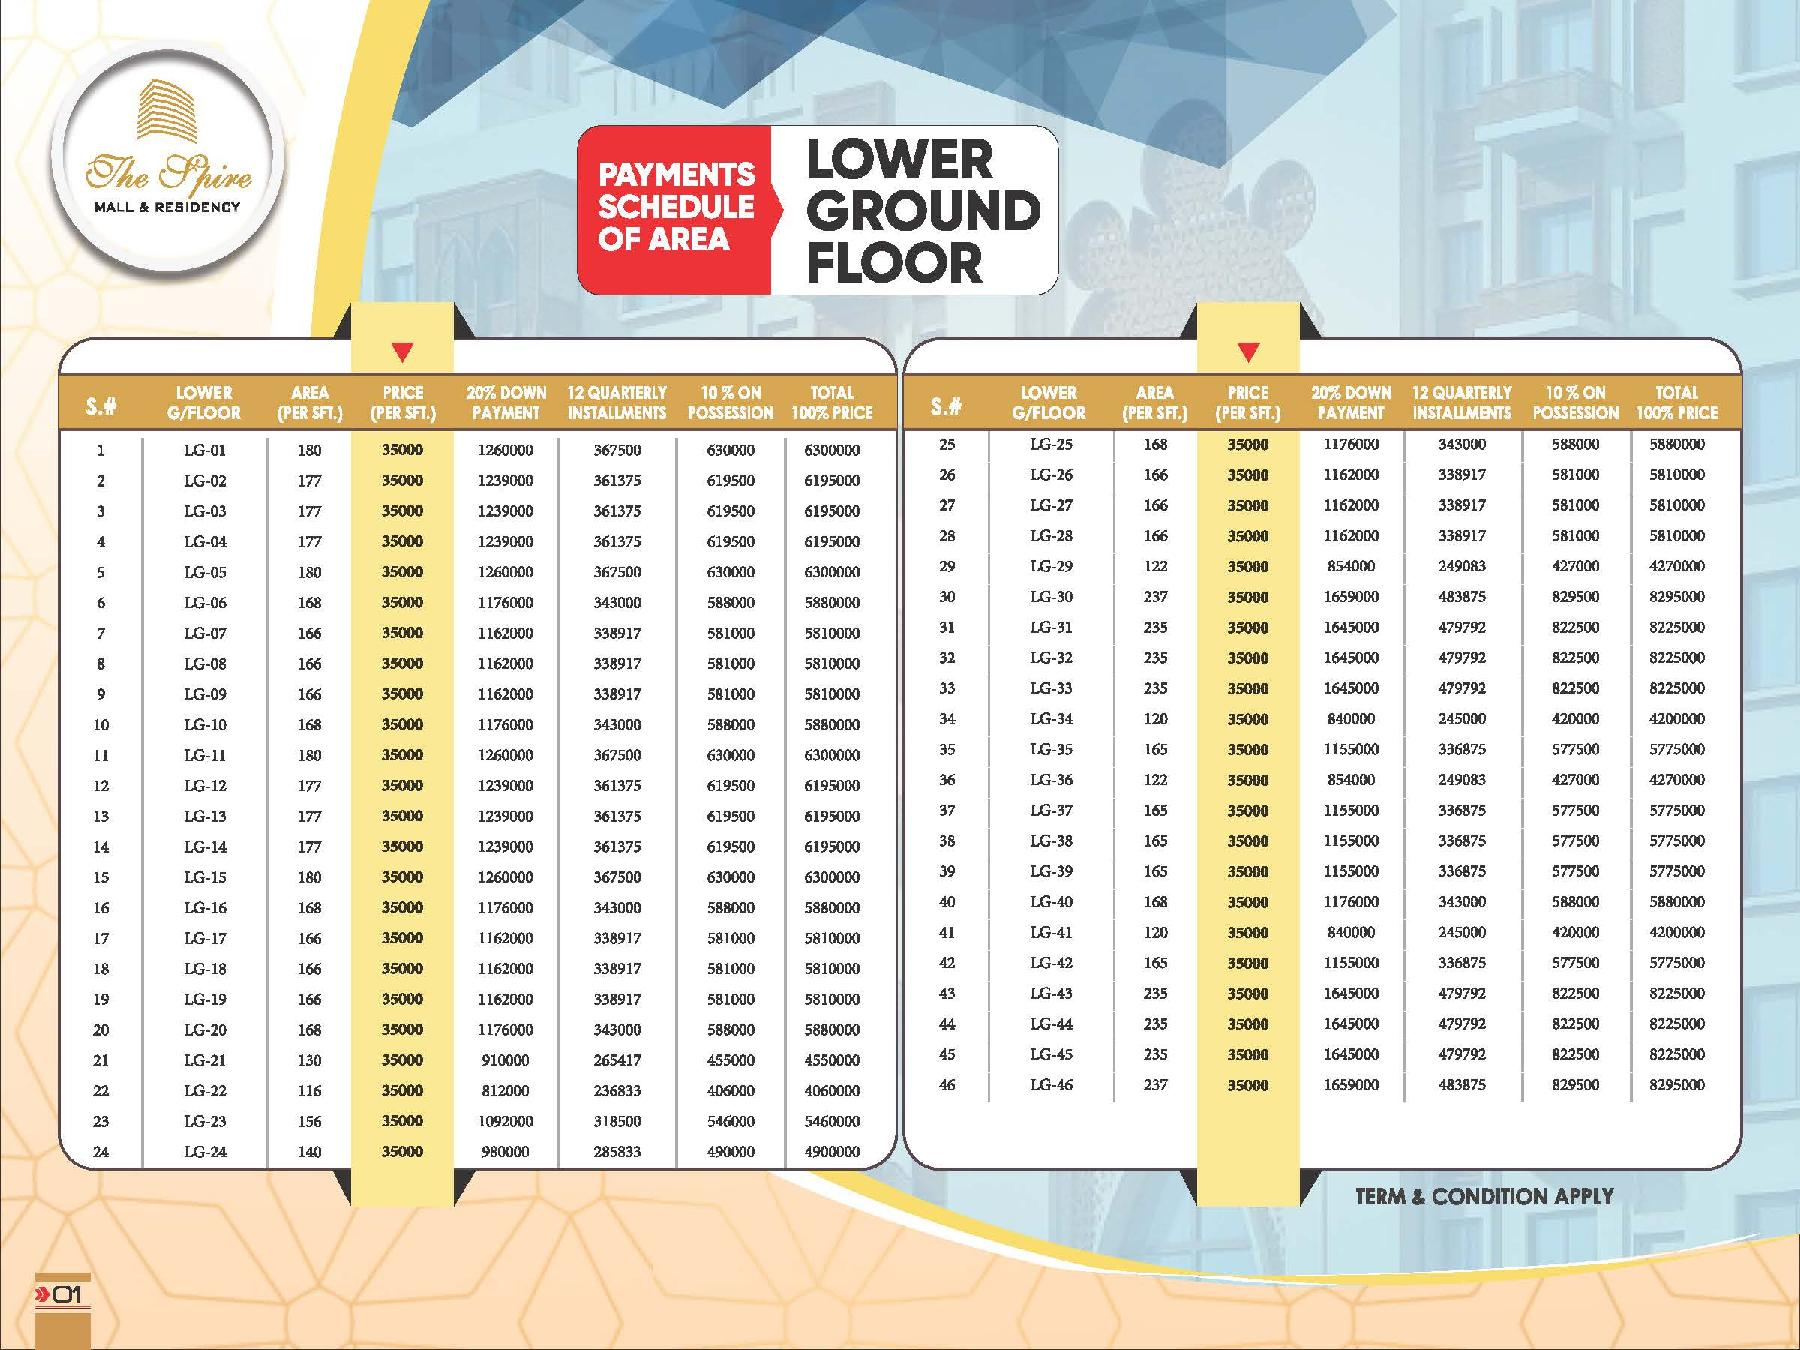 The Spire Mall Lower Ground Floor Shops Payment Plan